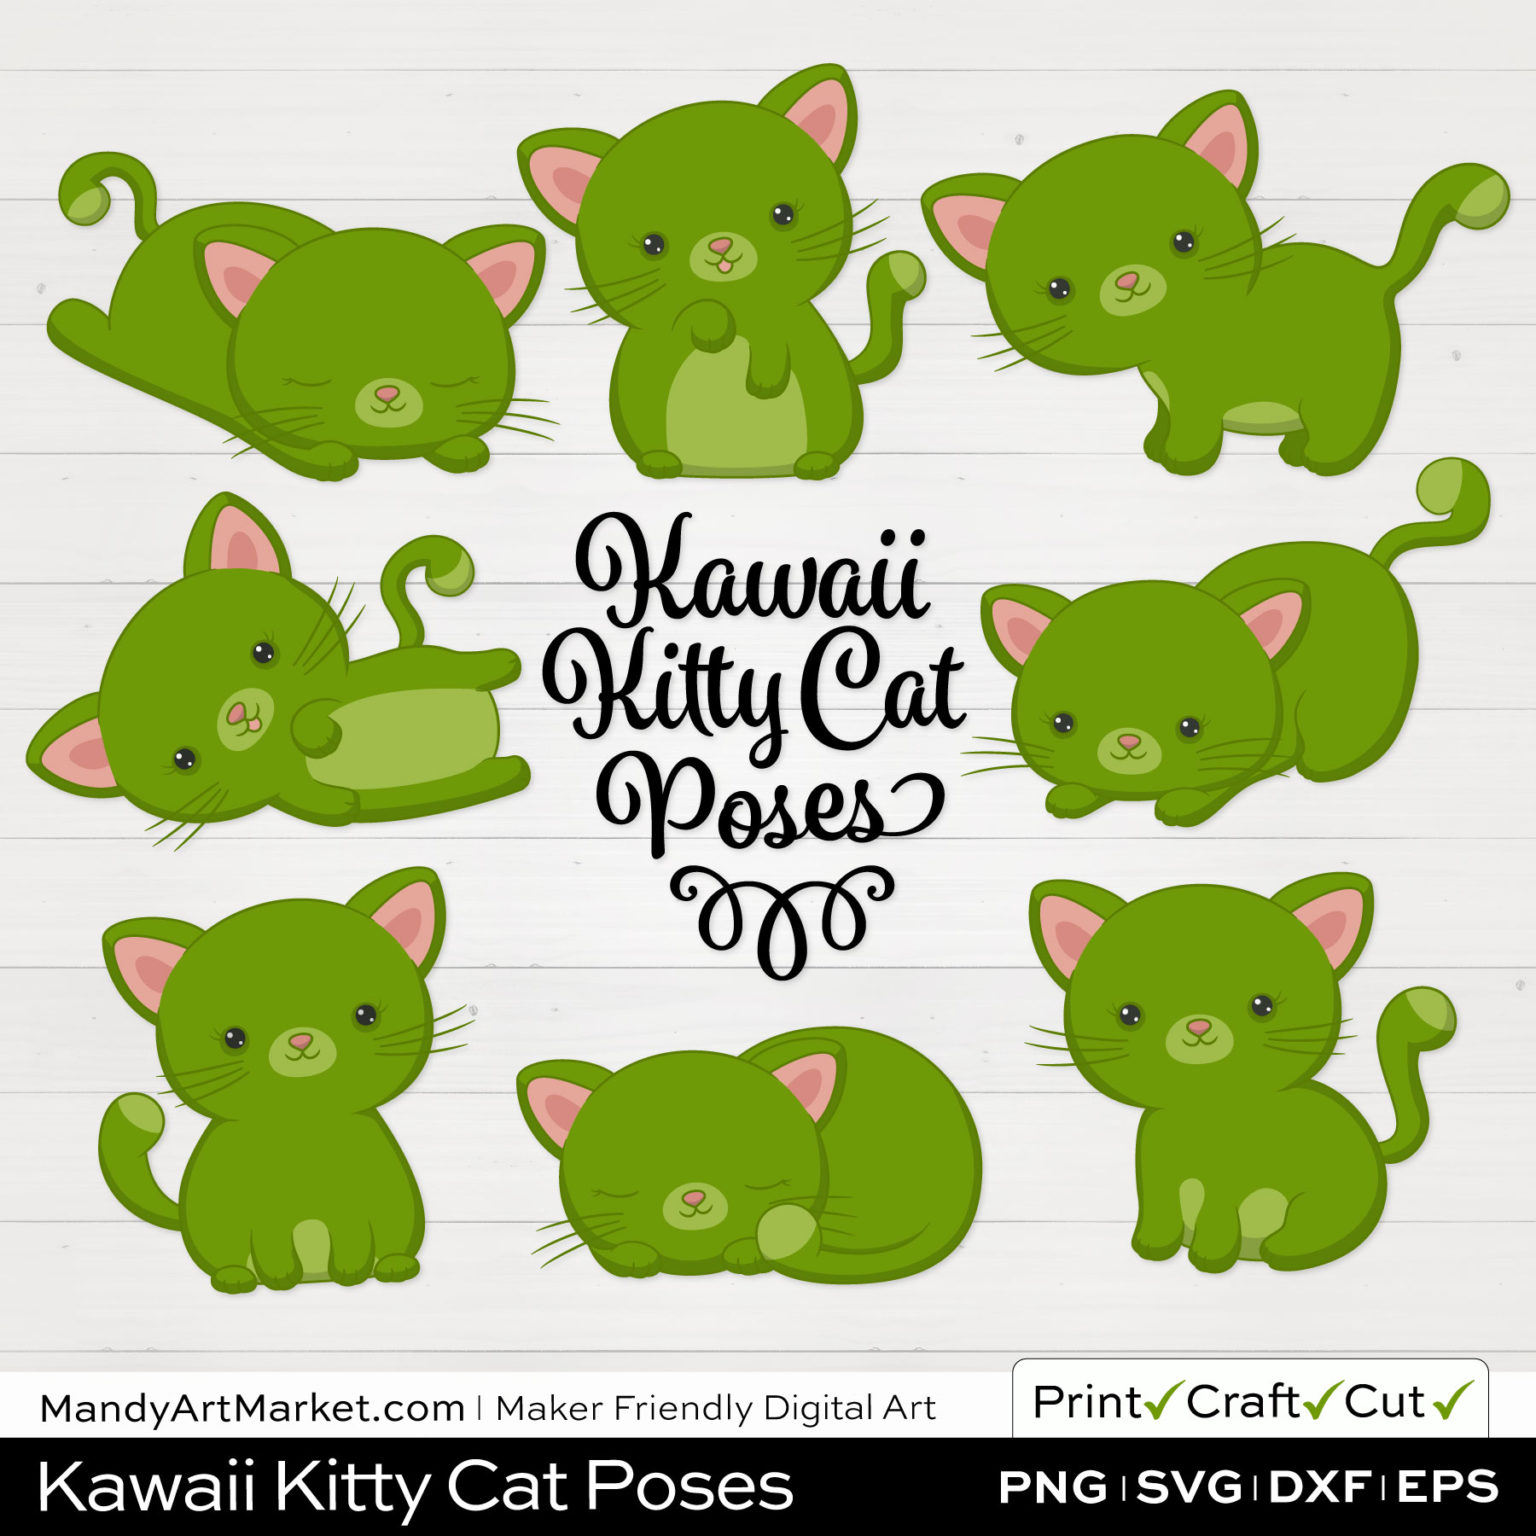 Bamboo Green Kawaii Kitty Cat Poses Clipart on White Background